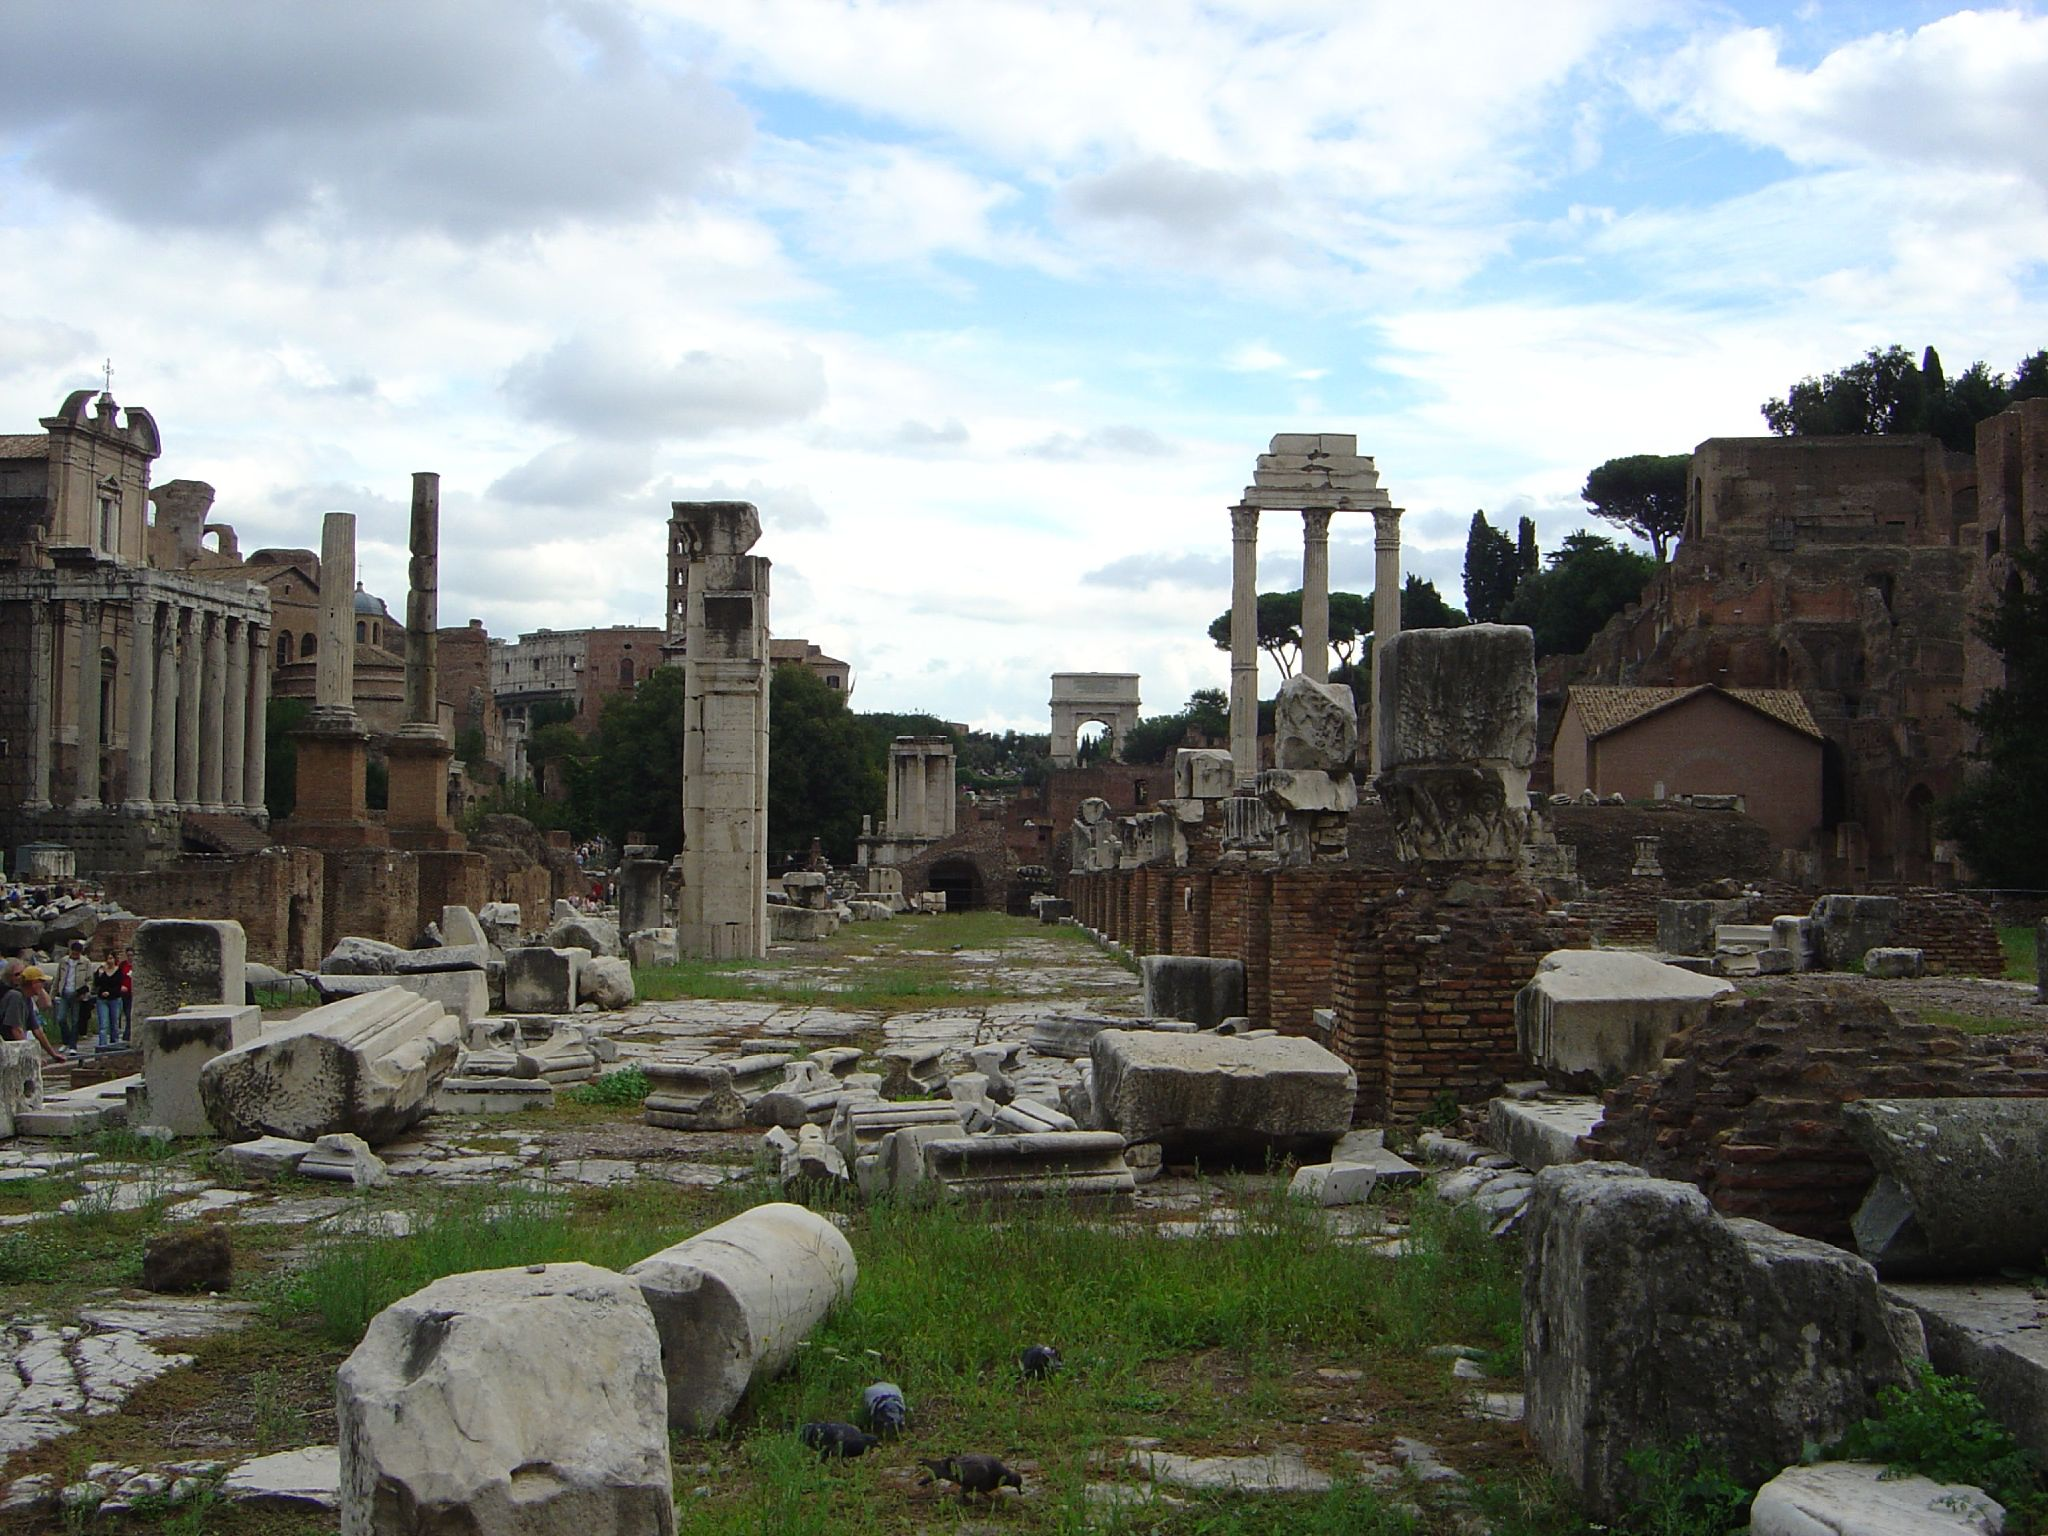 https://upload.wikimedia.org/wikipedia/commons/b/b1/Ruins_of_Roman_Forum.jpg